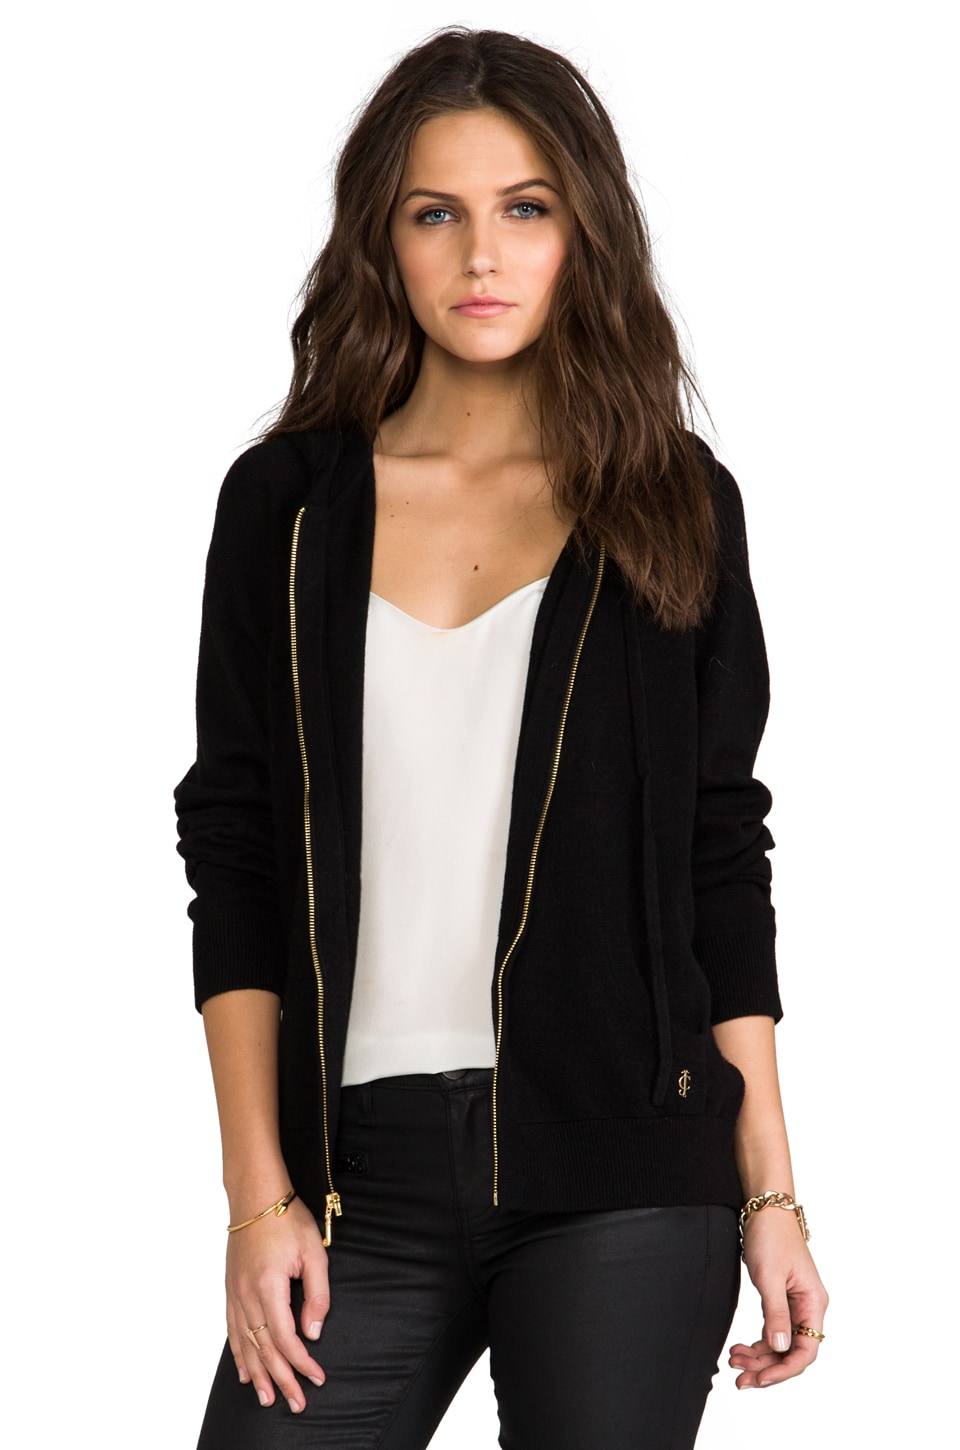 Juicy Couture Cozy Cash Blend Hoodie in Pitch Black